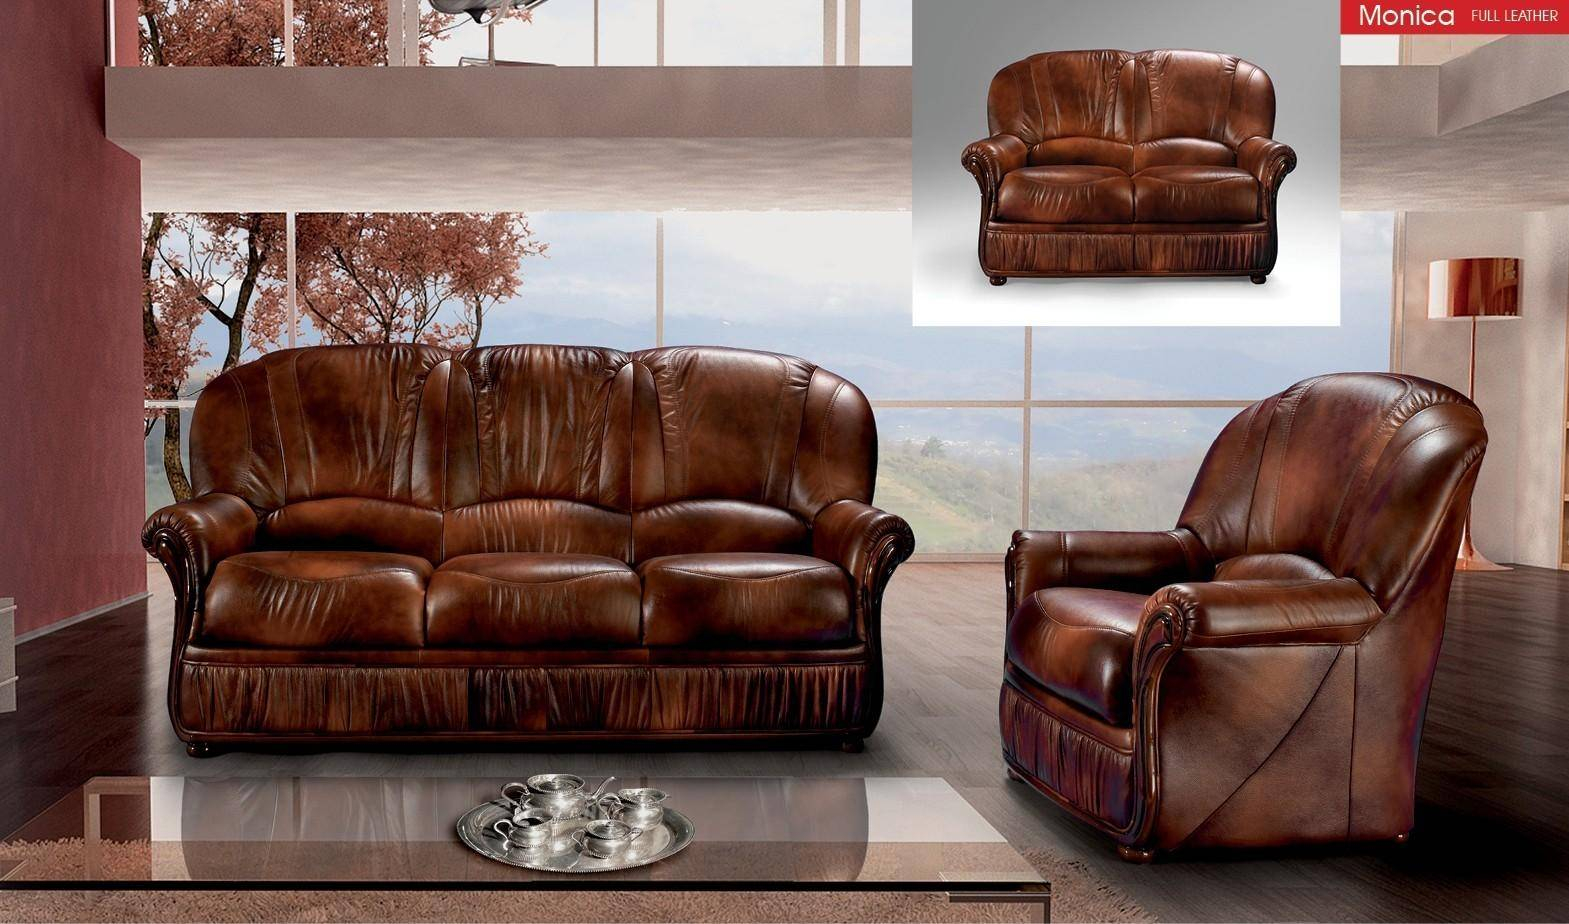 Esf Monica 2 Pcs In Brown Leather with 11 Clever Ideas How to Makeover Full Living Room Sets